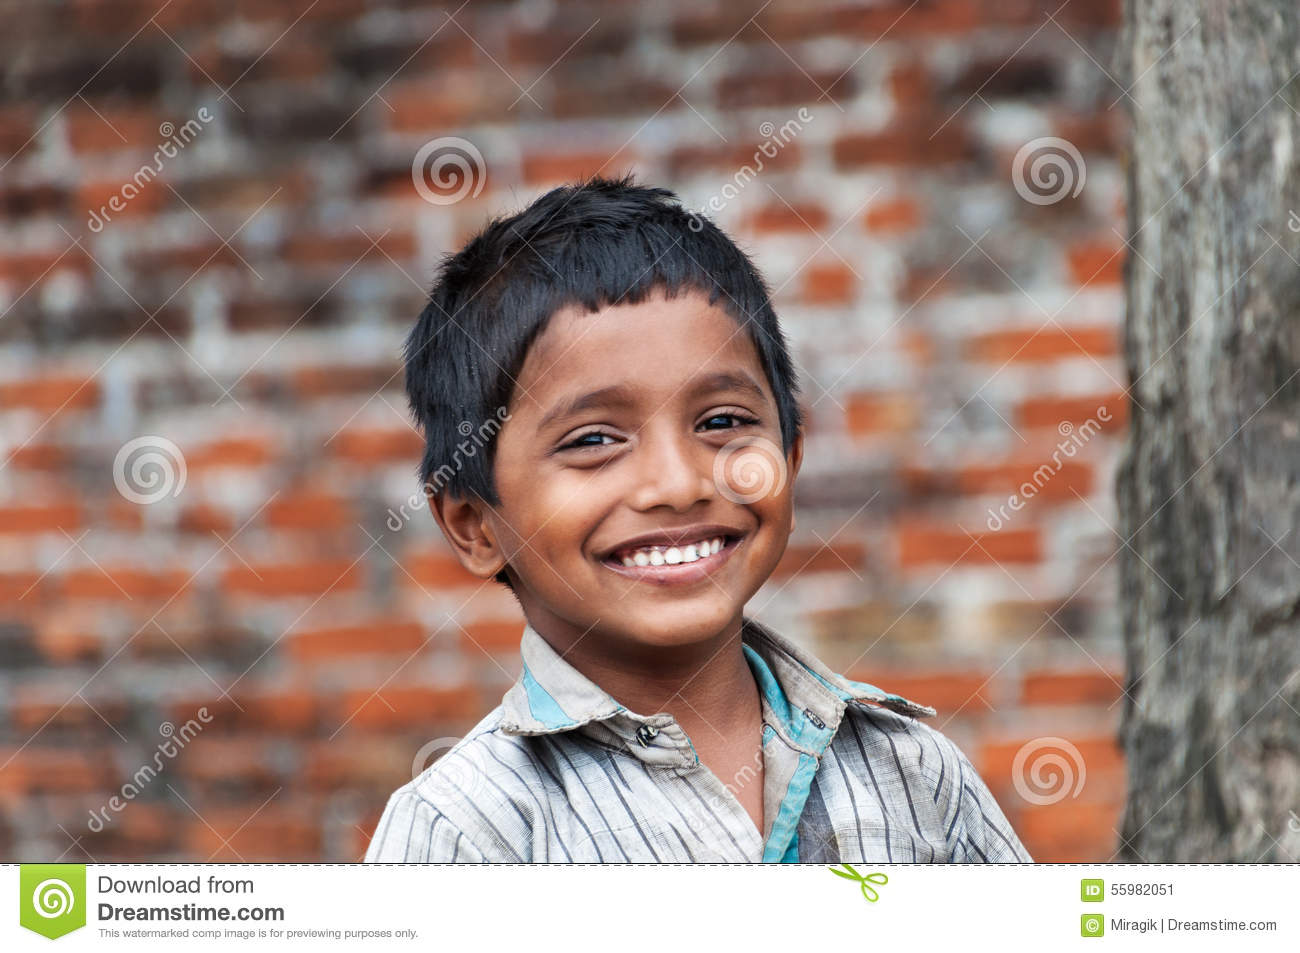 Boy In The Village Royalty-Free Stock Image  Cartoondealercom 73967356-6809